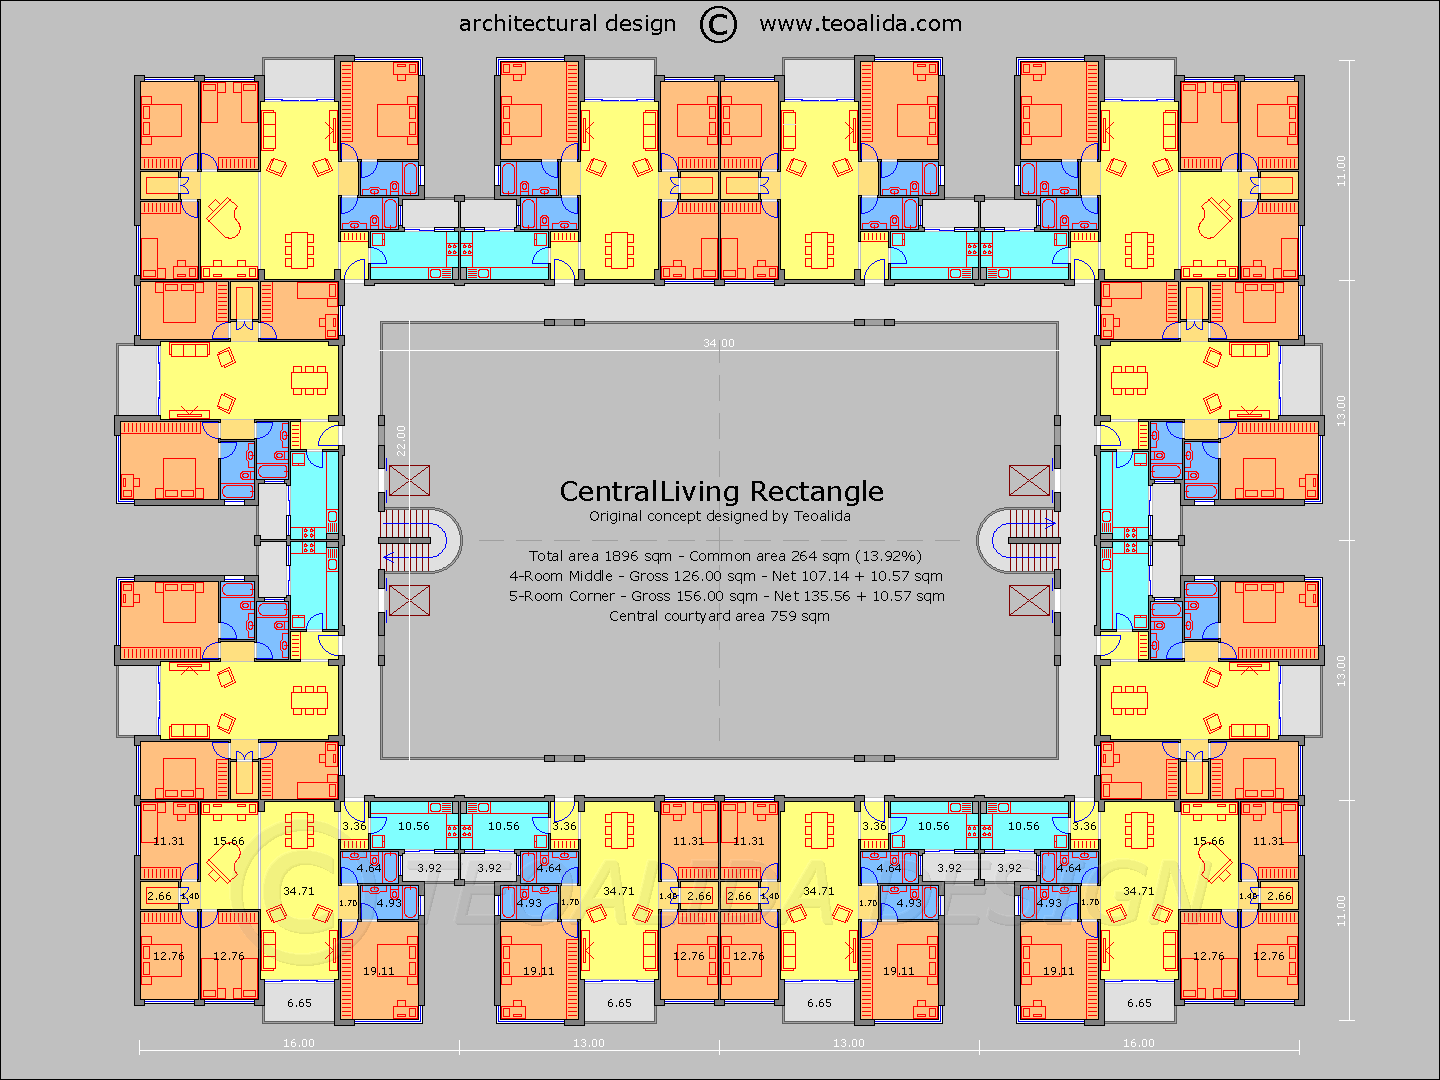 Centralliving rectangle floor plan conference centre for Apartment building layout